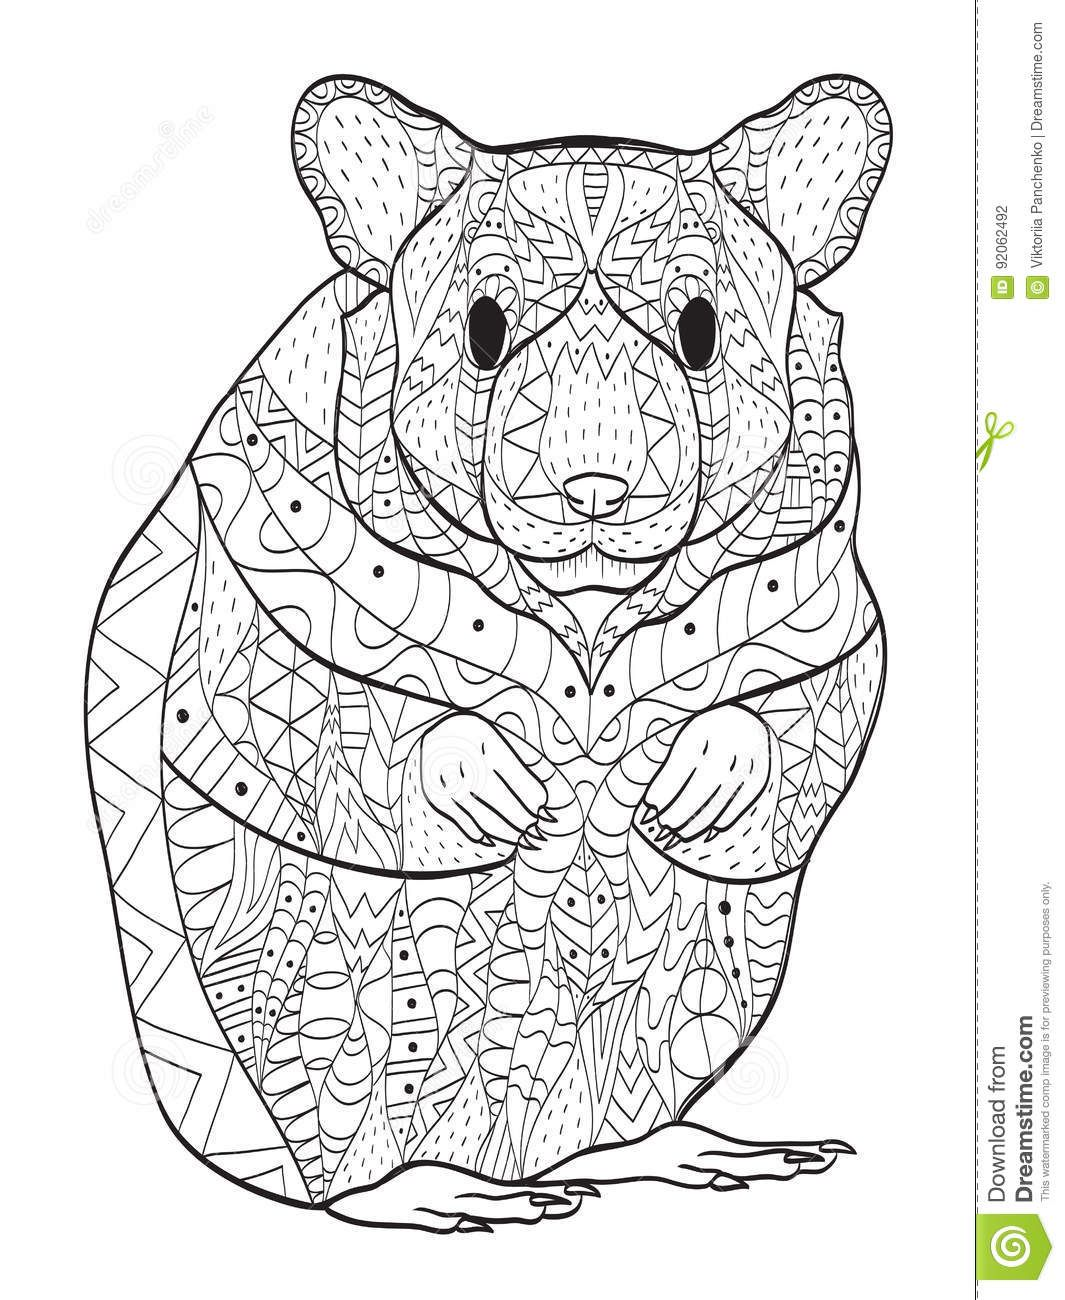 Rodent Hamster Coloring Vector For Adults Stock Vector Illustration Of Black Abstract 92062492 Animal Drawings Hamster Illustration